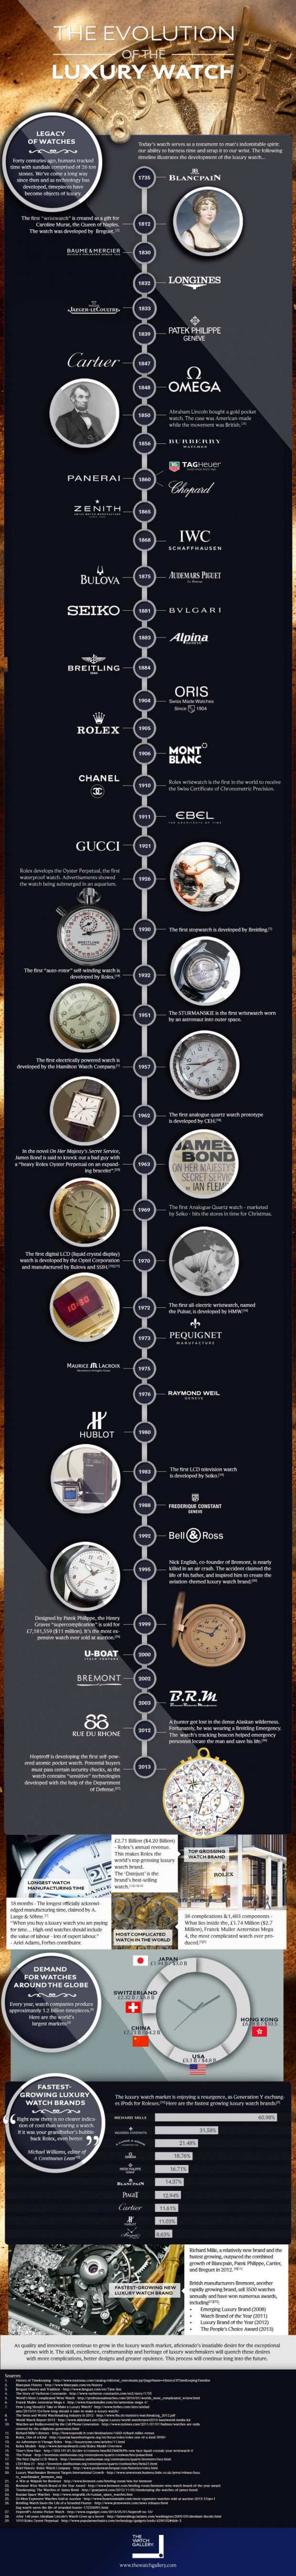 Evolution of the Luxury Watch Infographic